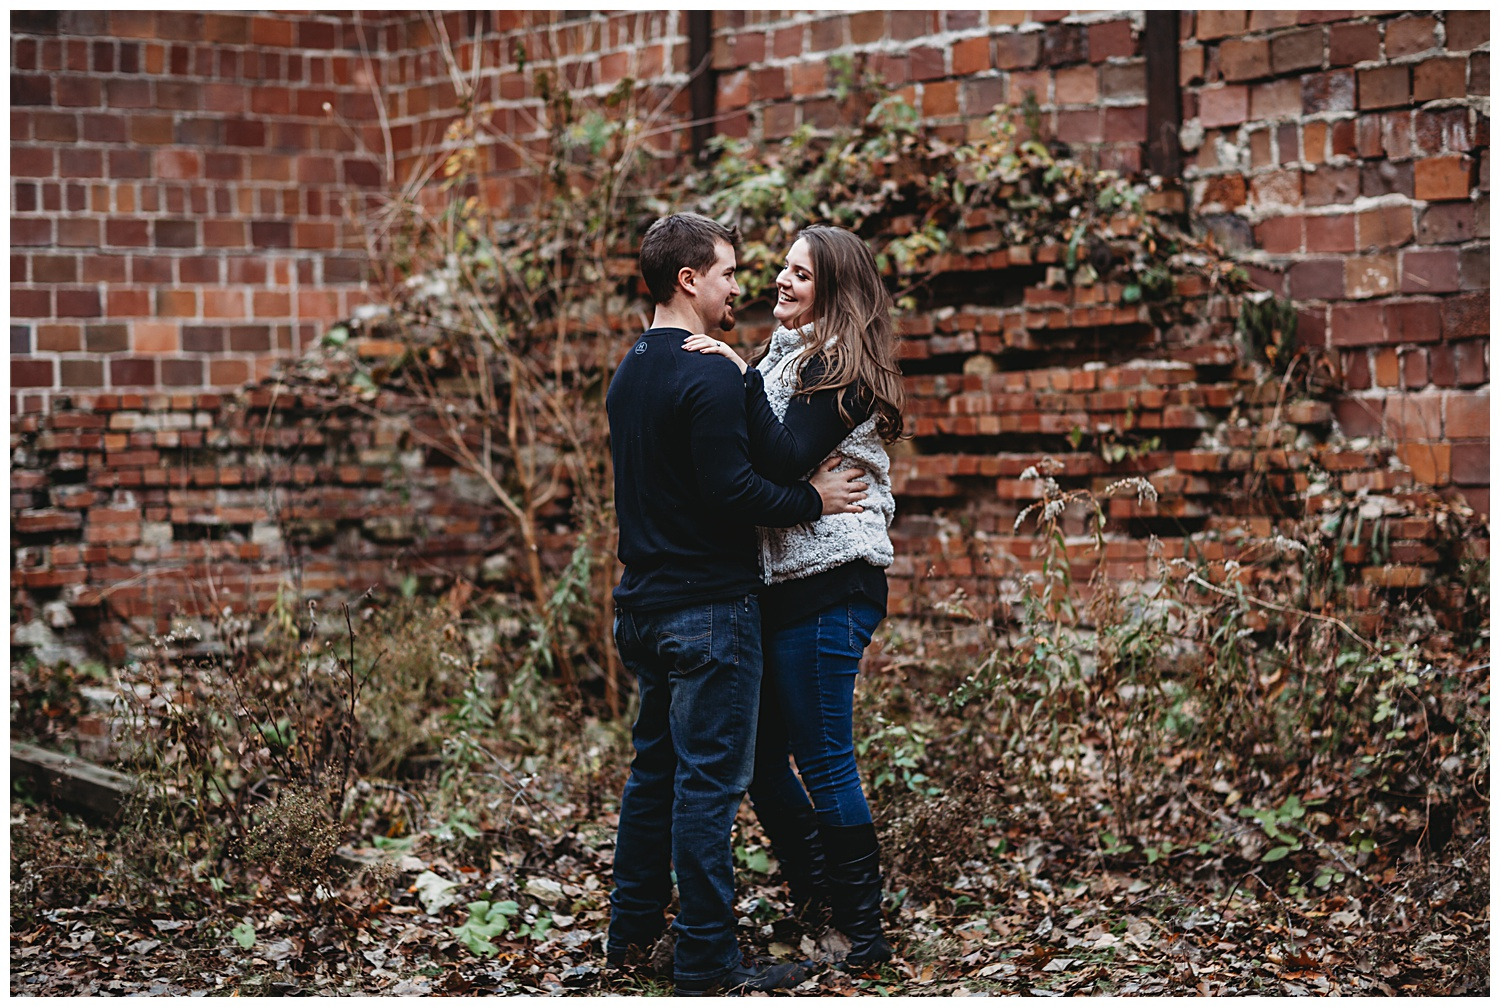 Belle Isle Park Detroit Michigan Engagement Photos_1092.jpg